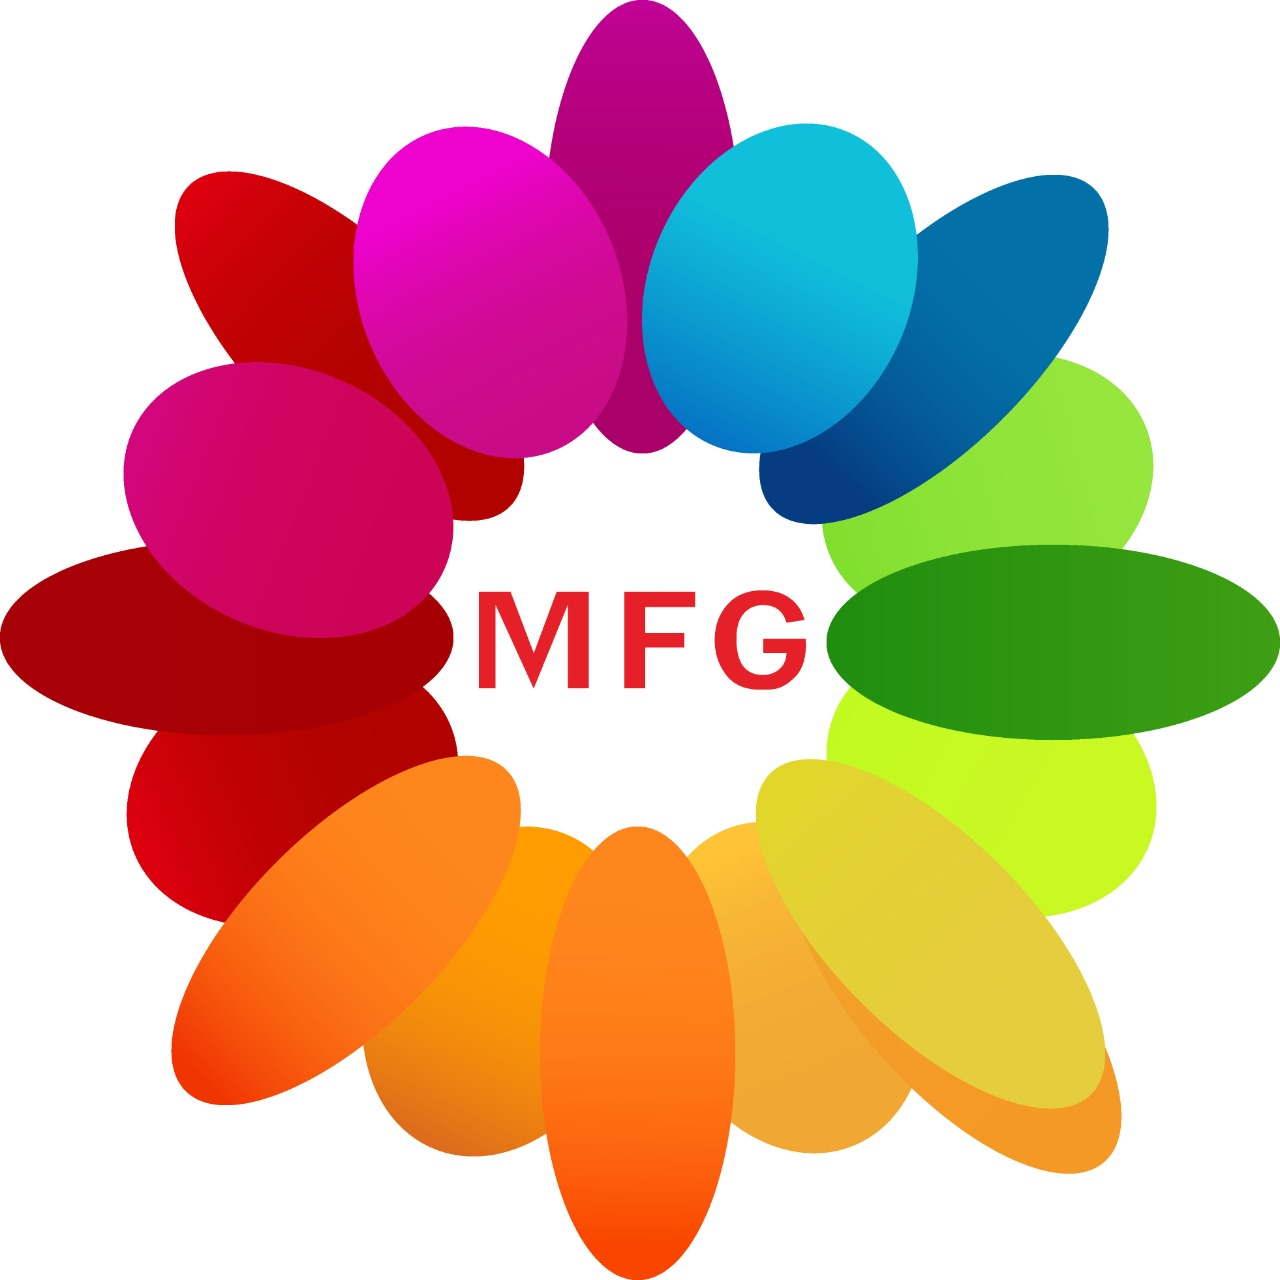 Cutie Pie .. A cute Pink Teddy bear along with beautiful arrangement of mix flowers